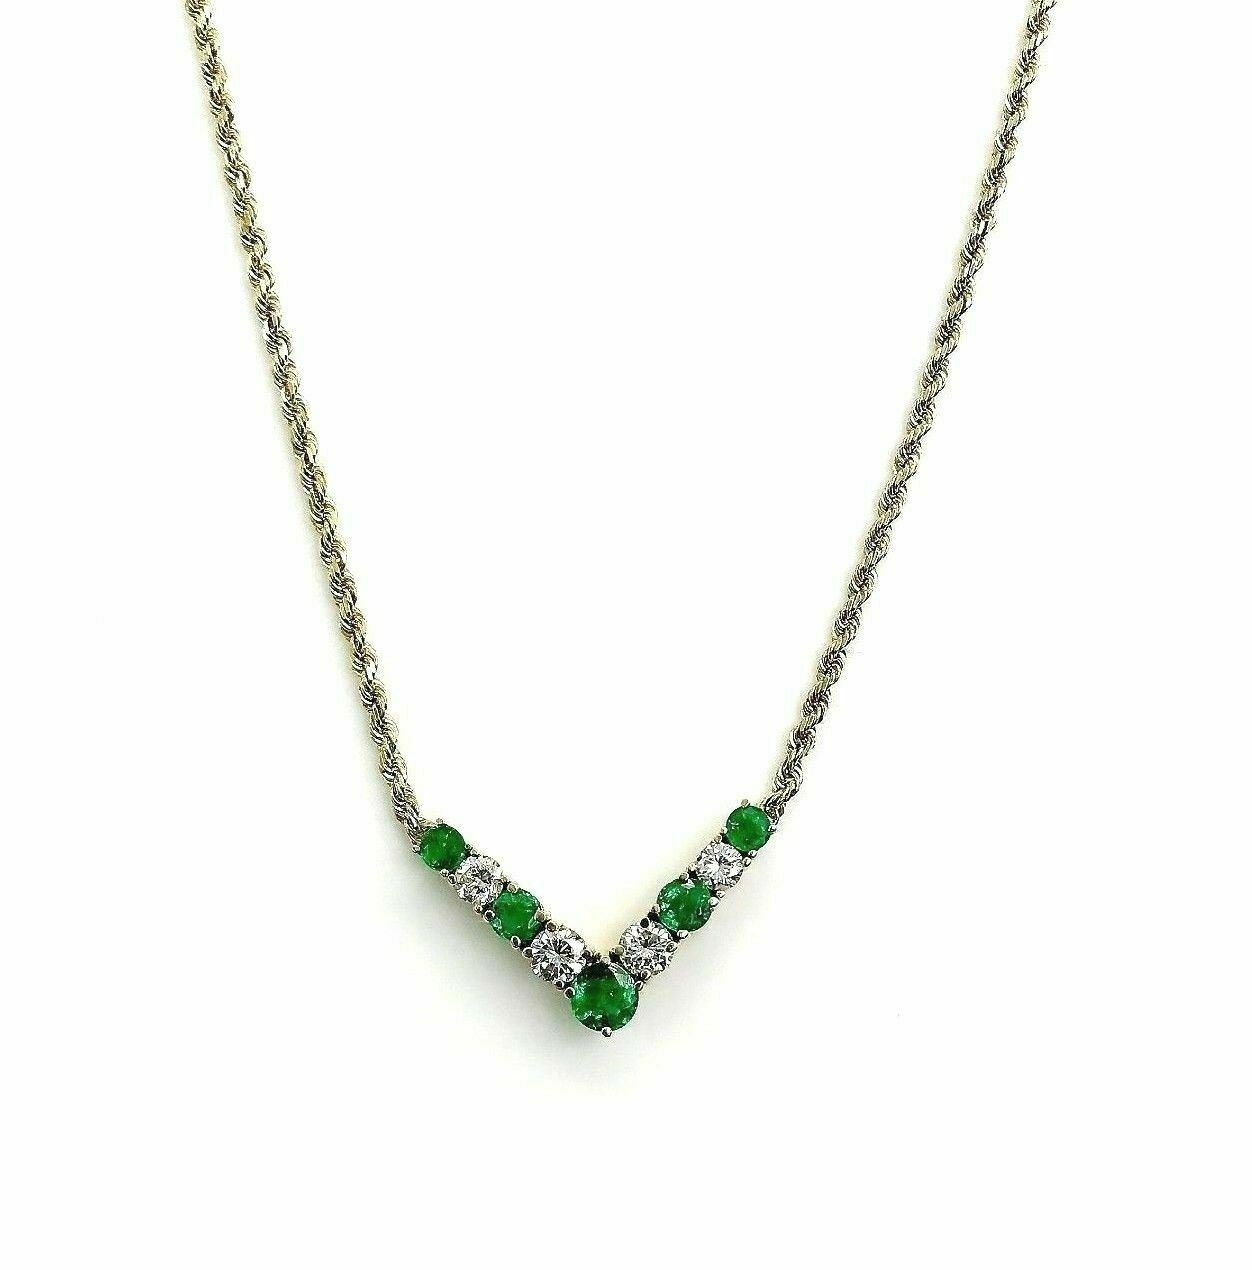 2.48 Carats t.w. Emerald & Diamond Necklace with Attached 14K Yellow Gold Chain